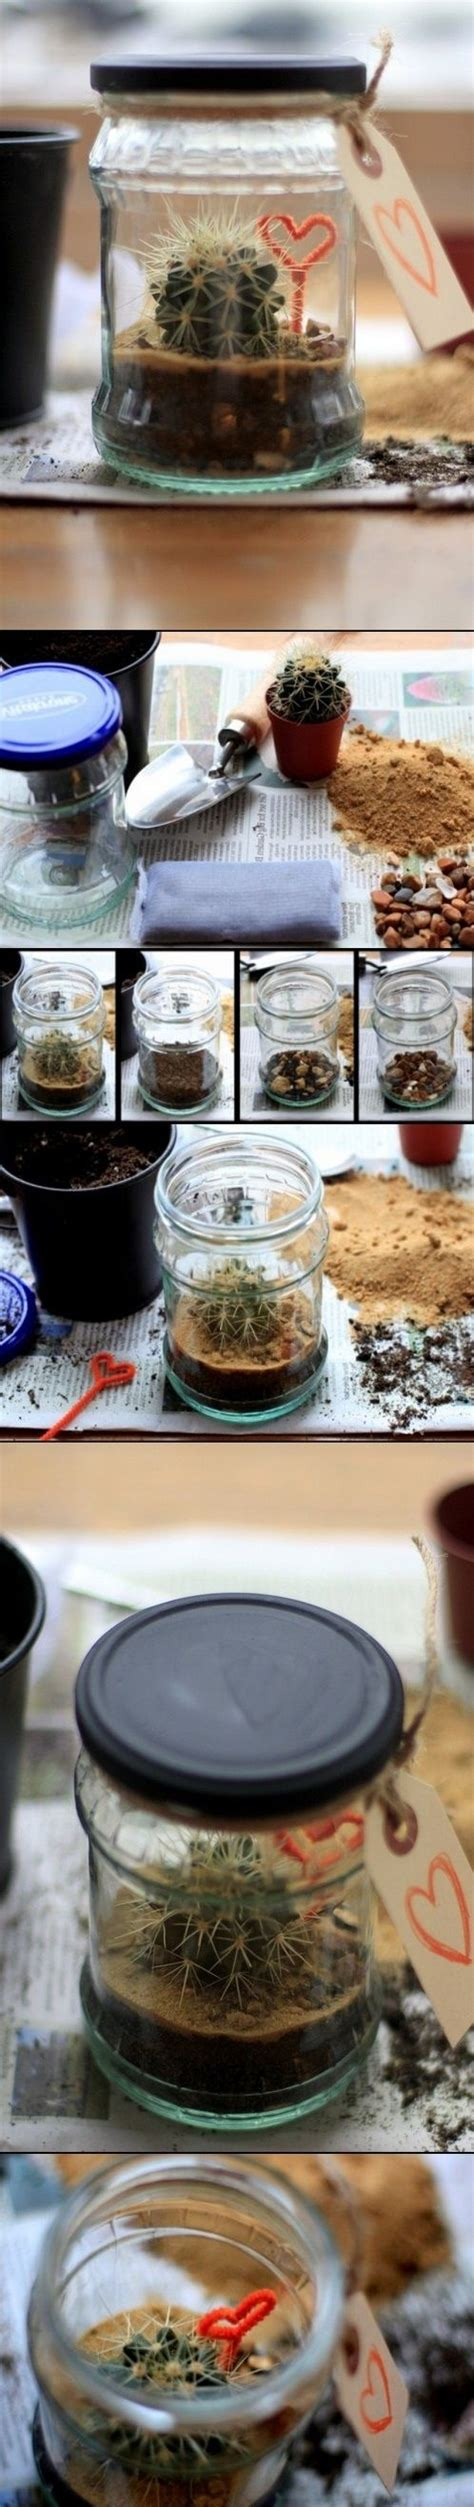 kitchen window terrarium diy terrarium ideas terrariums pinterest terrarium ideas diy terrarium and terrarium